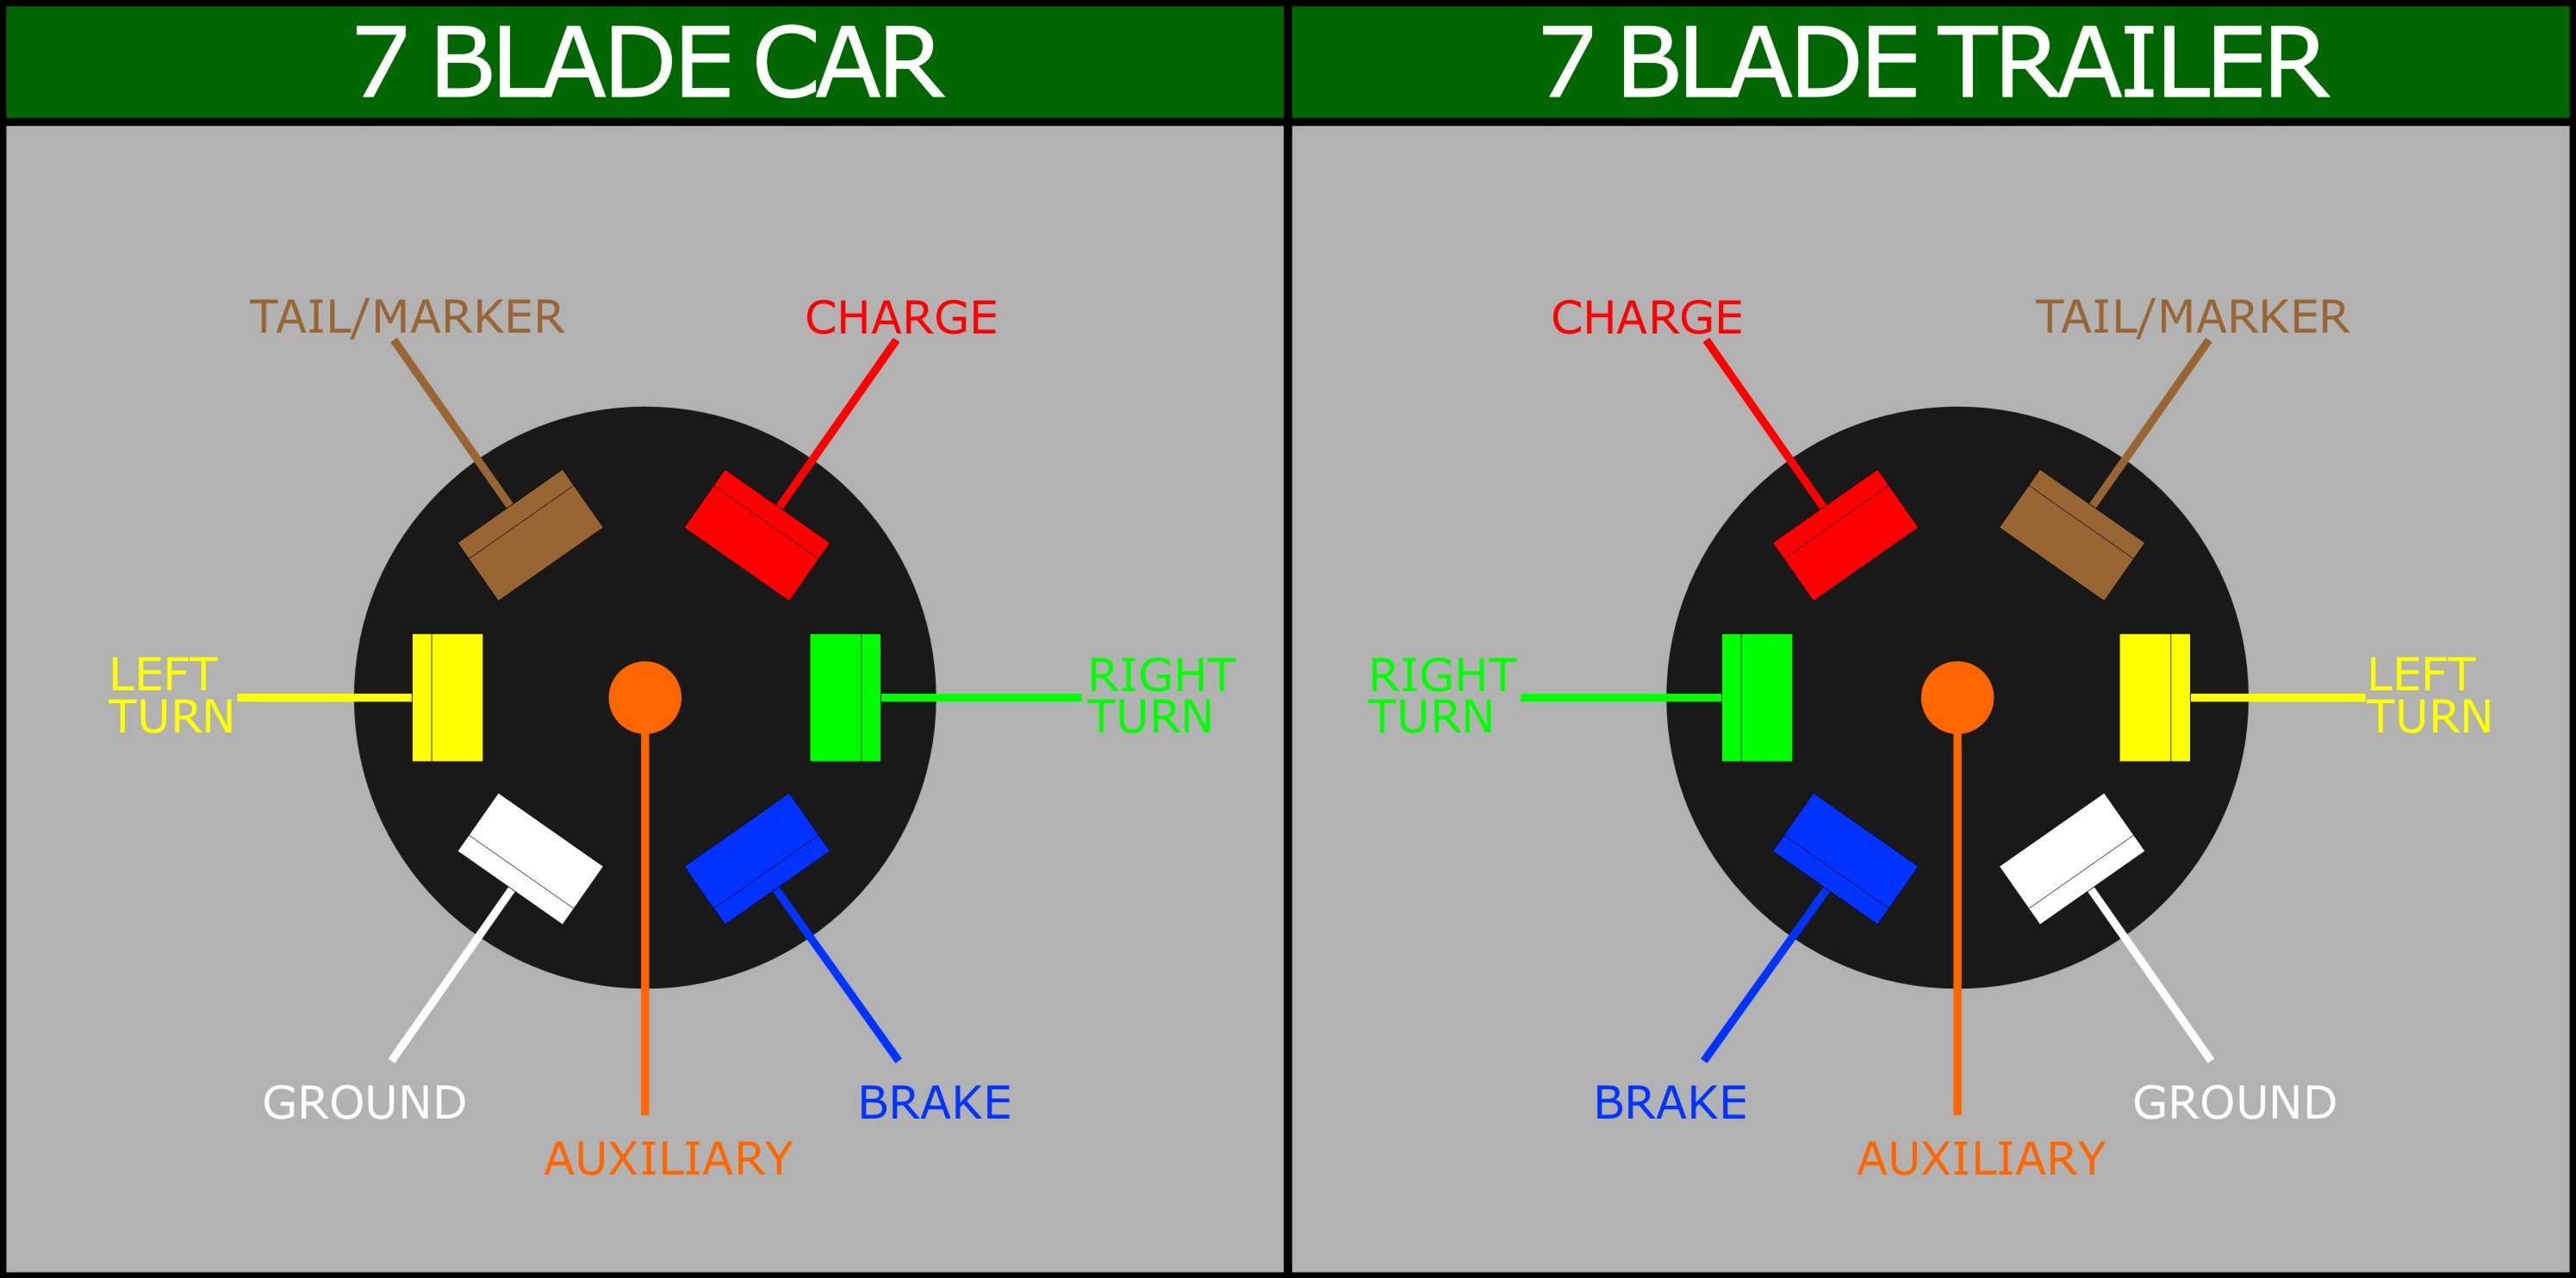 Wiring for 7 Blade Plug wiring a 7 blade trailer harness or plug 7 blade trailer plug wiring diagram at crackthecode.co